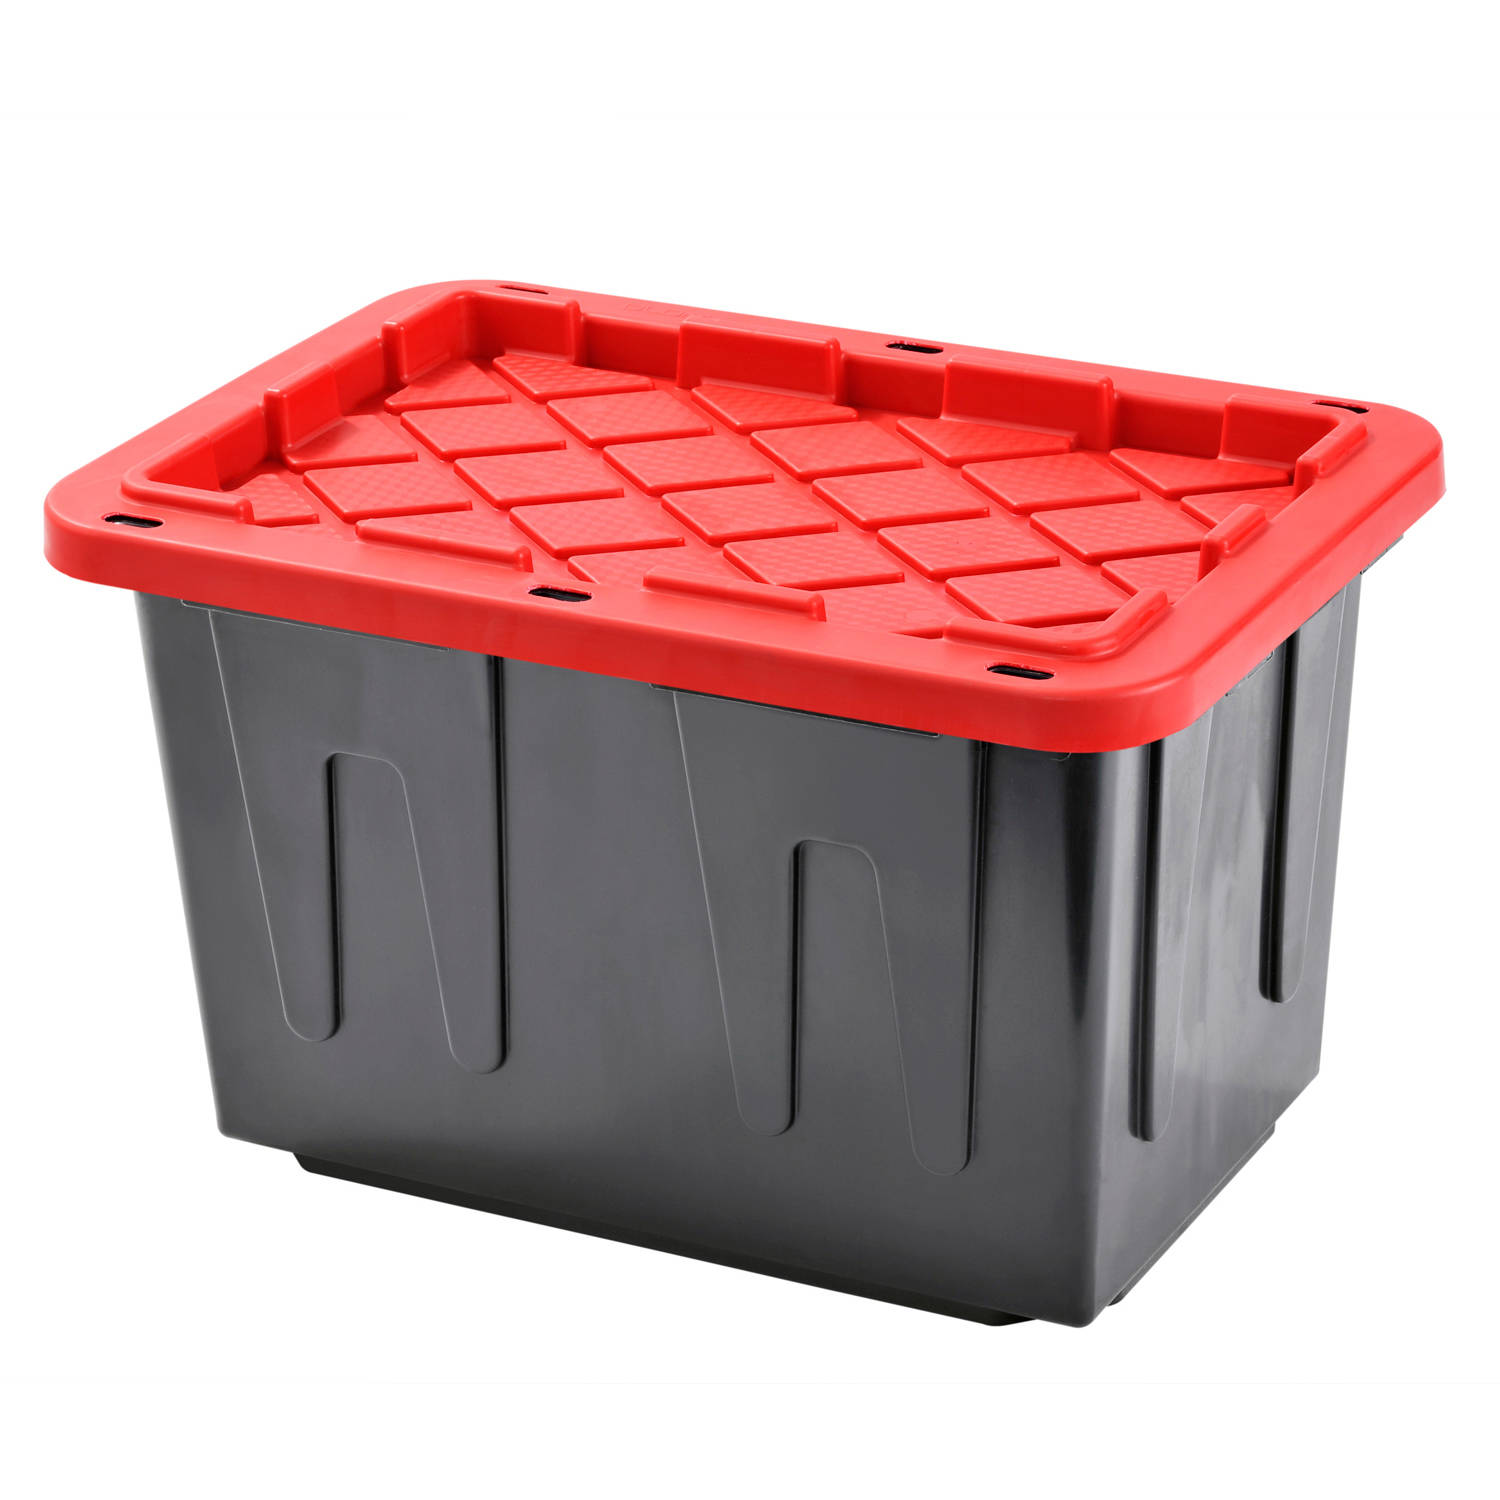 Plastic Heavy Duty Storage Tote Box, 23 Gallon, Black with Red Snap Lid, Stackable, 4-Pack